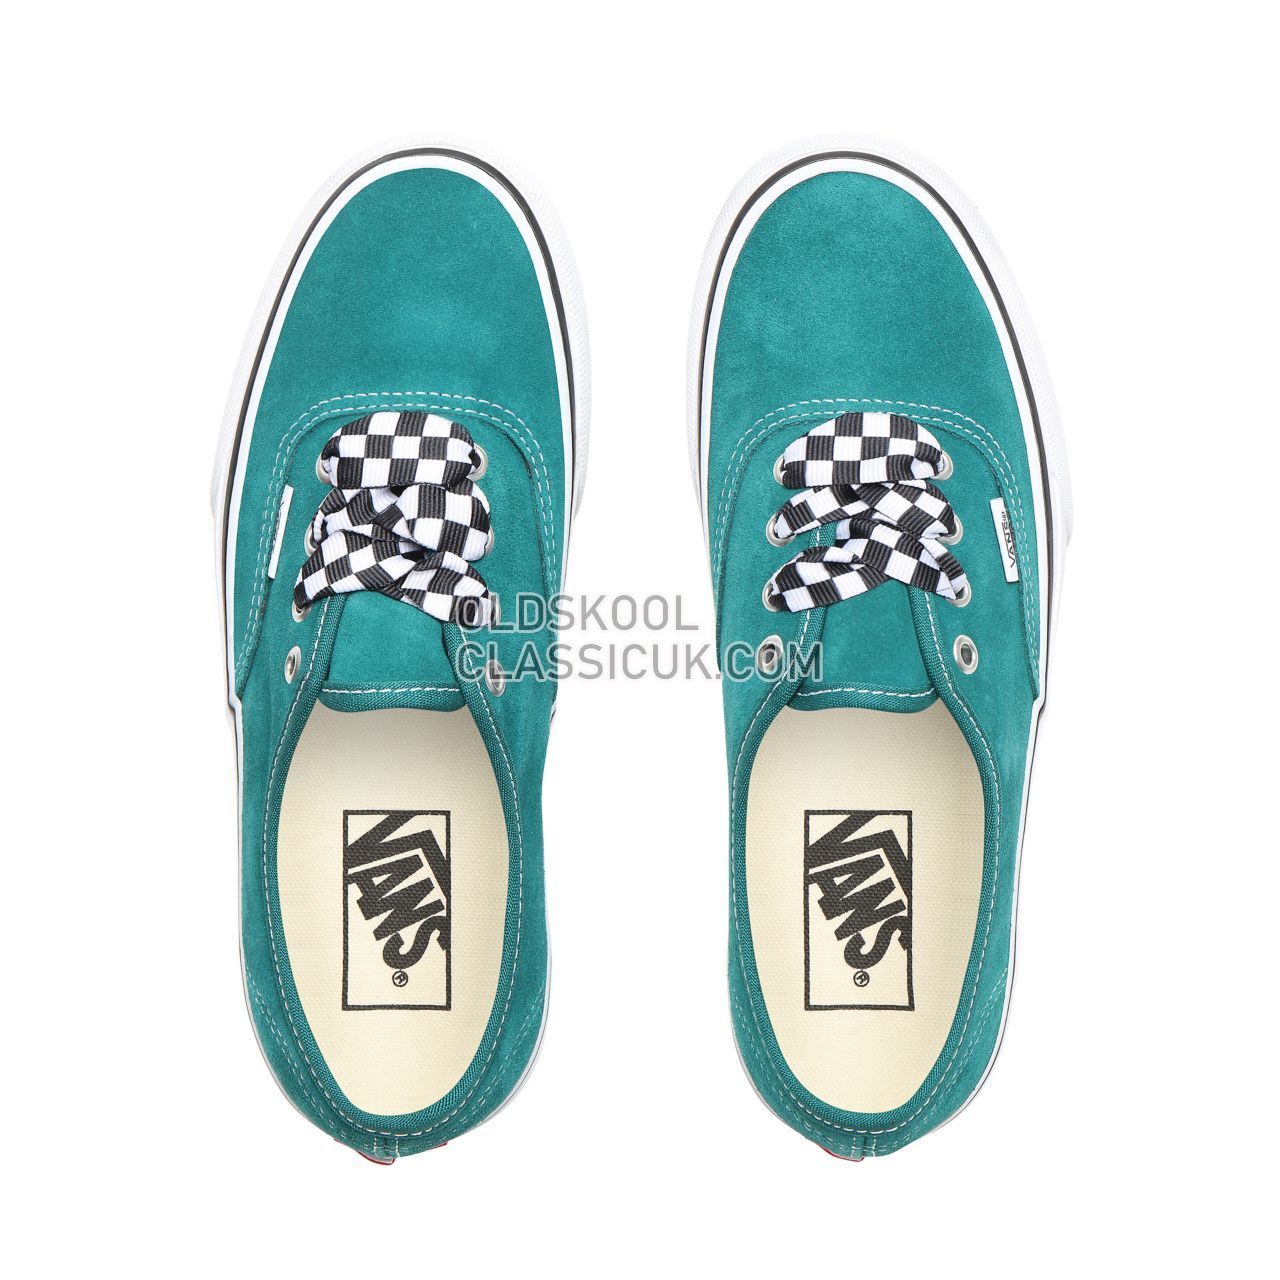 Vans Checkerboard Lace Authentic Platform 2.0 Sneakers Womens (Checkerboard Lace) Quetzal Green/True White VN0A3AV8S1W Shoes